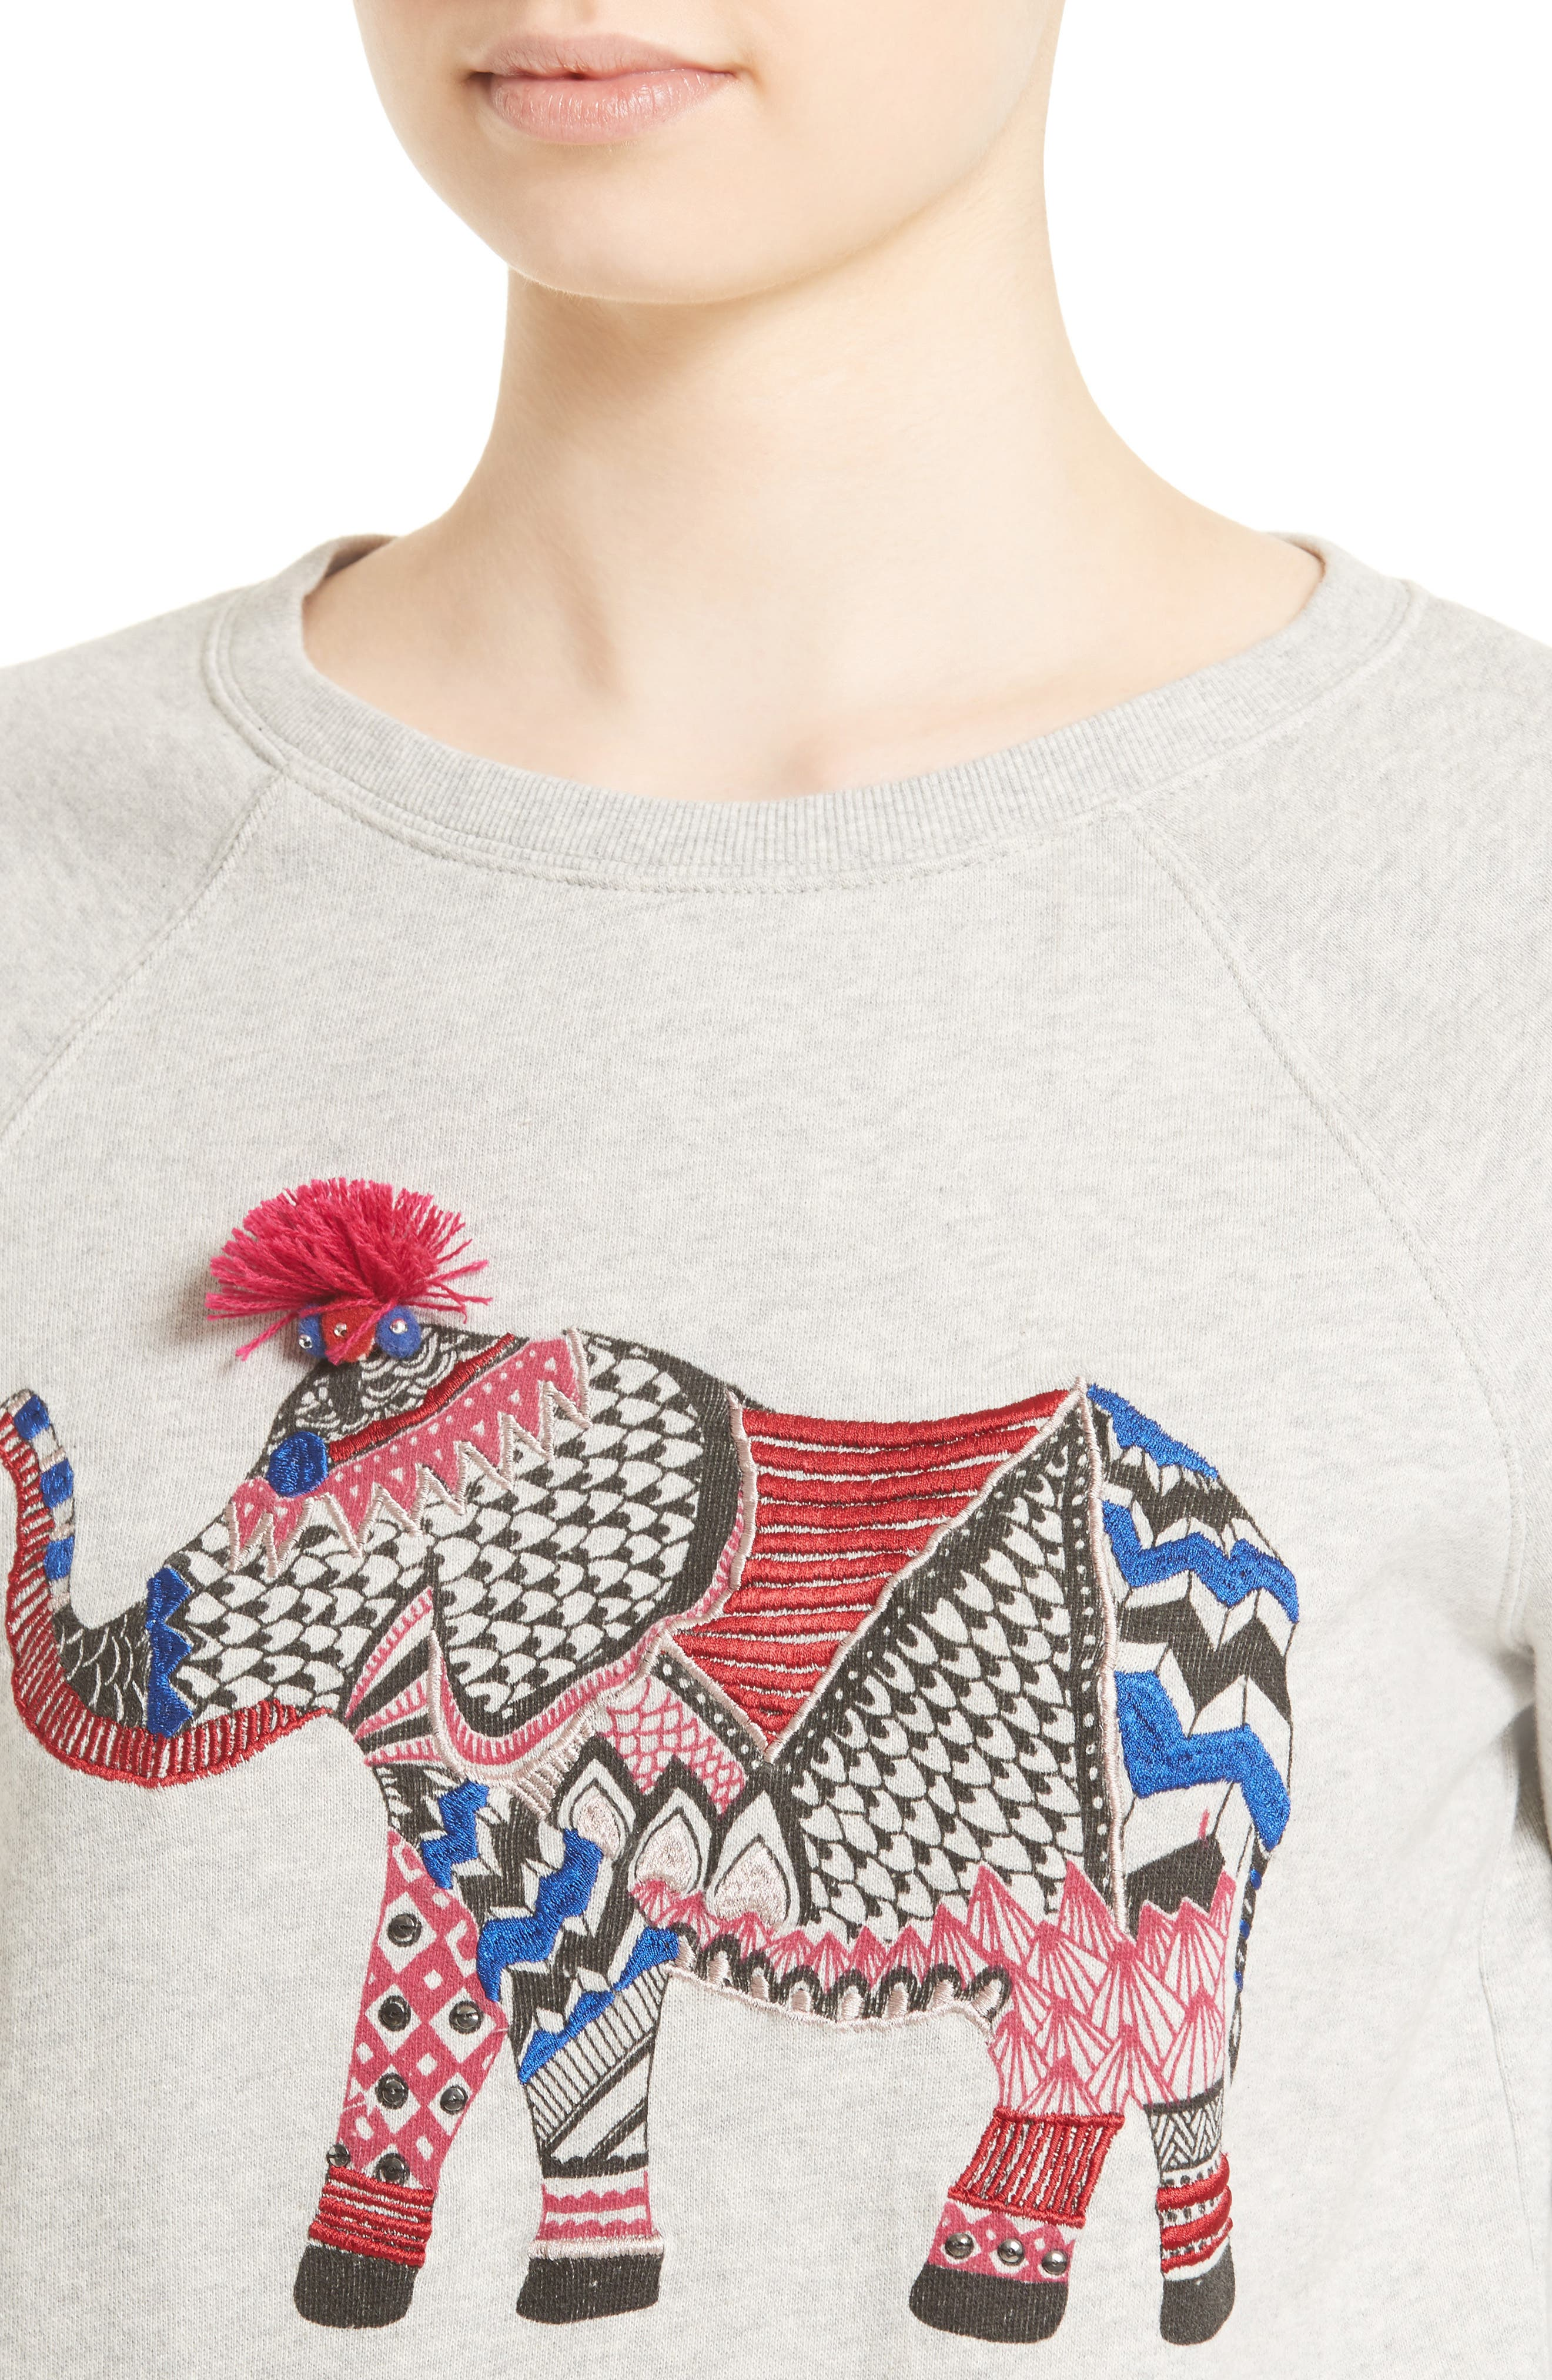 SOFT JOIE,                             Annora Embroidered Elephant Sweatshirt,                             Alternate thumbnail 4, color,                             099